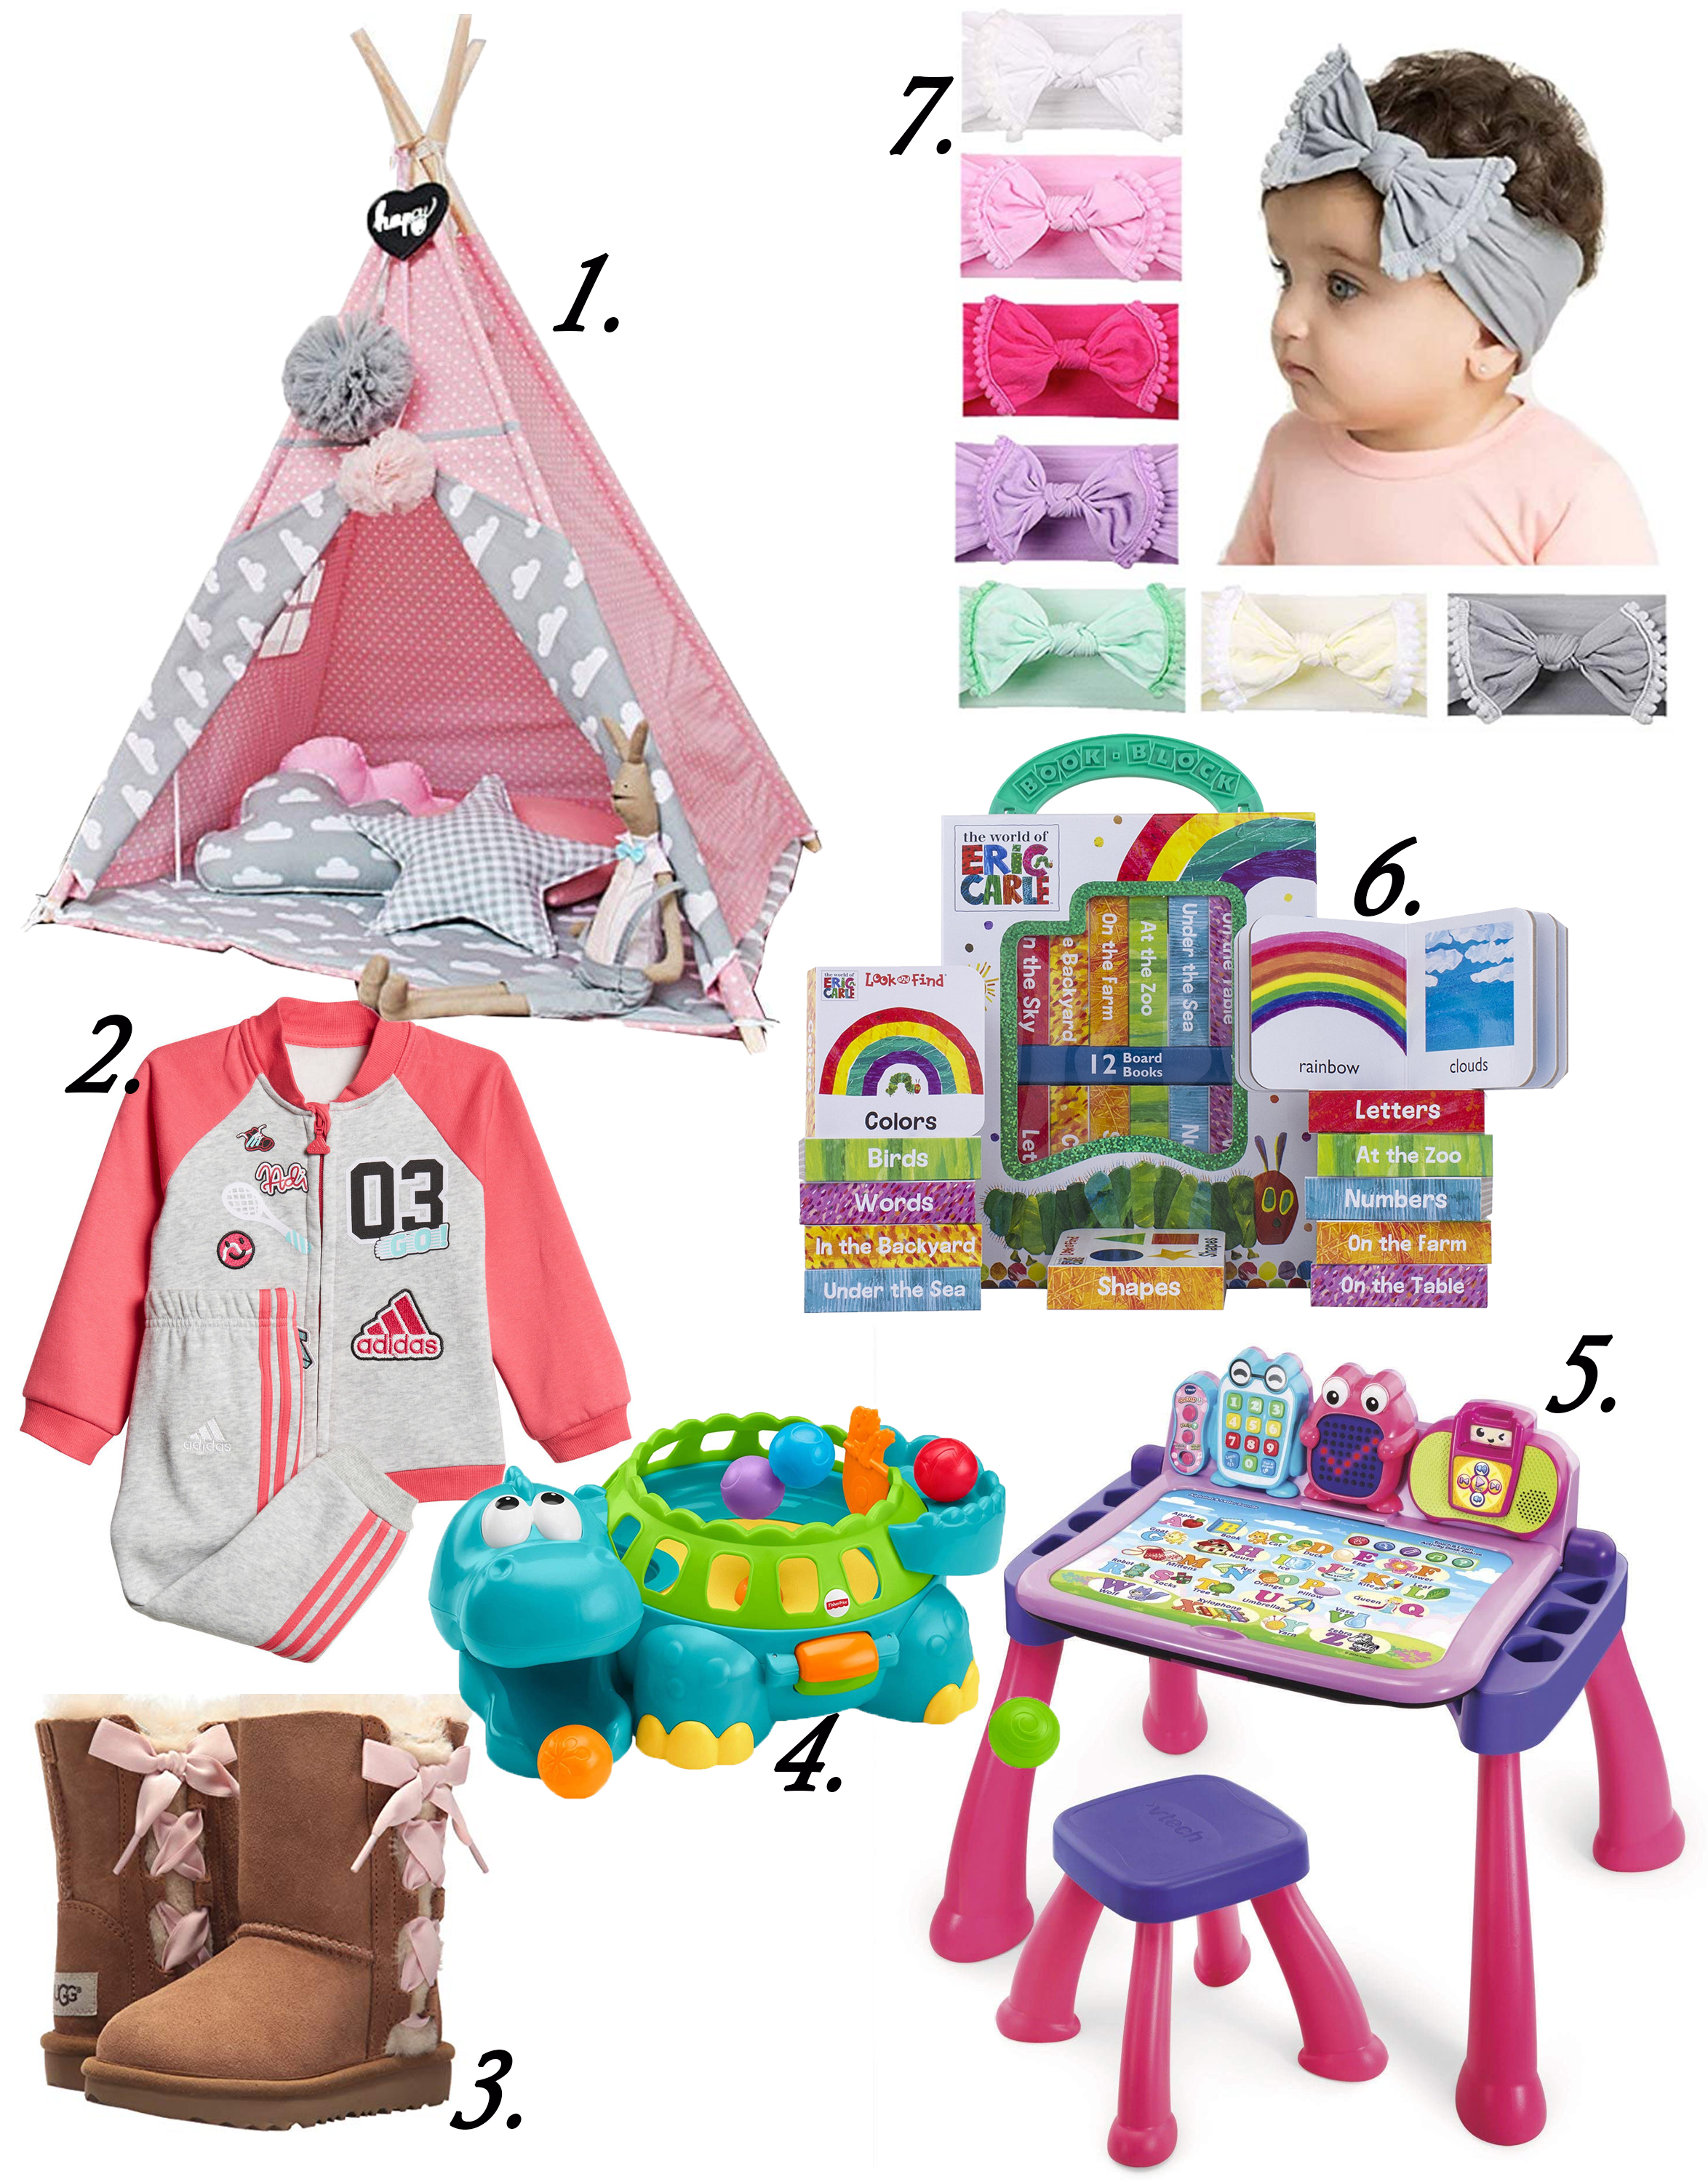 Toddler girl gift guide 2018